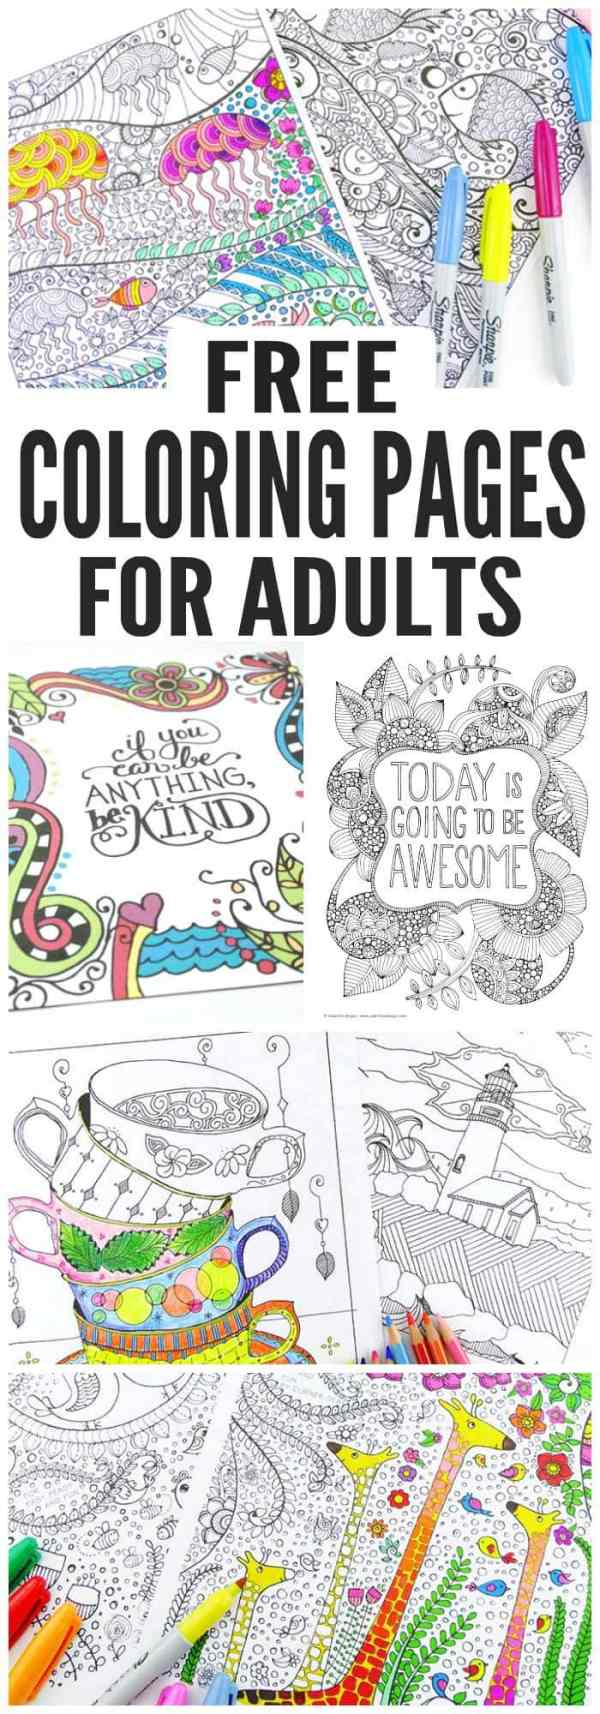 free coloring pages for adults printable # 62